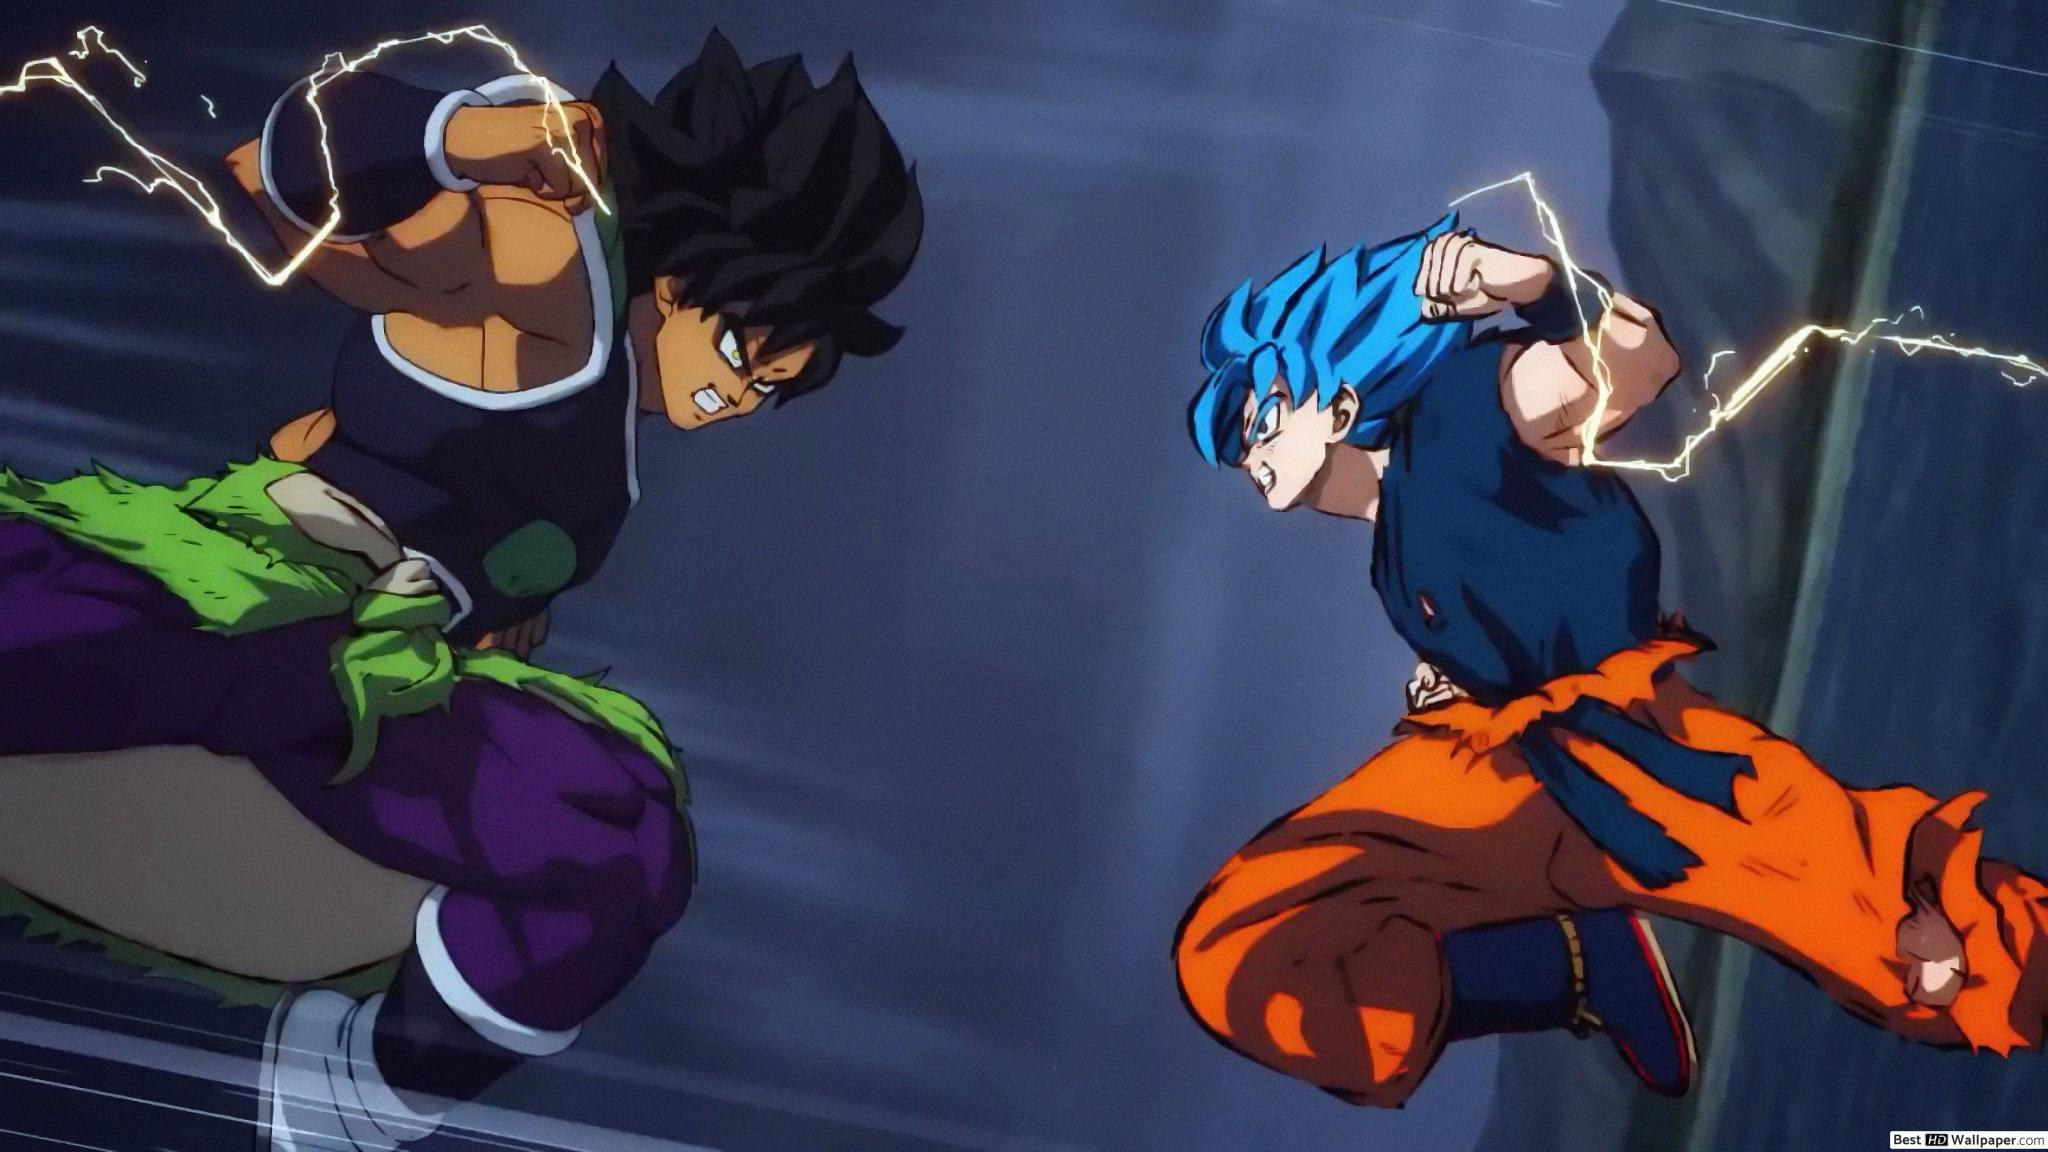 Dbs Broly Wallpaper Hd Posted By Ethan Anderson